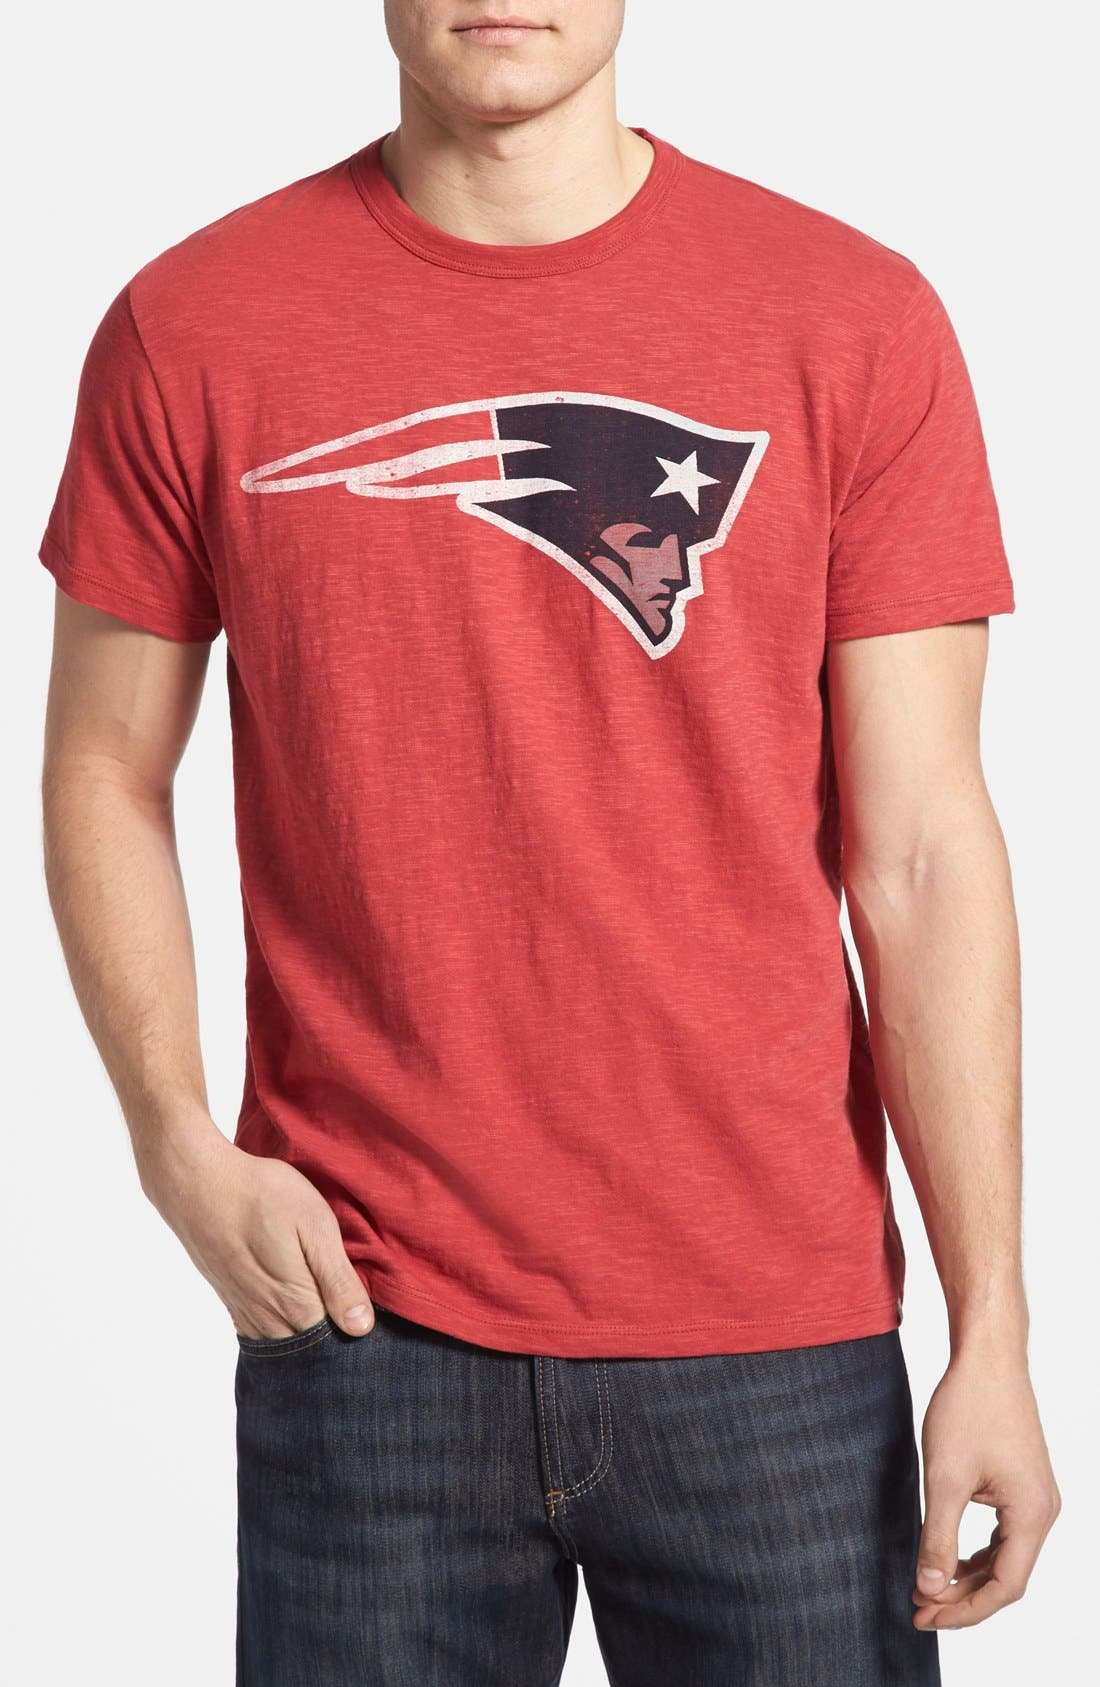 Alternate Image 1 Selected - '47 'New England Patriots - Scrum' Graphic T-Shirt